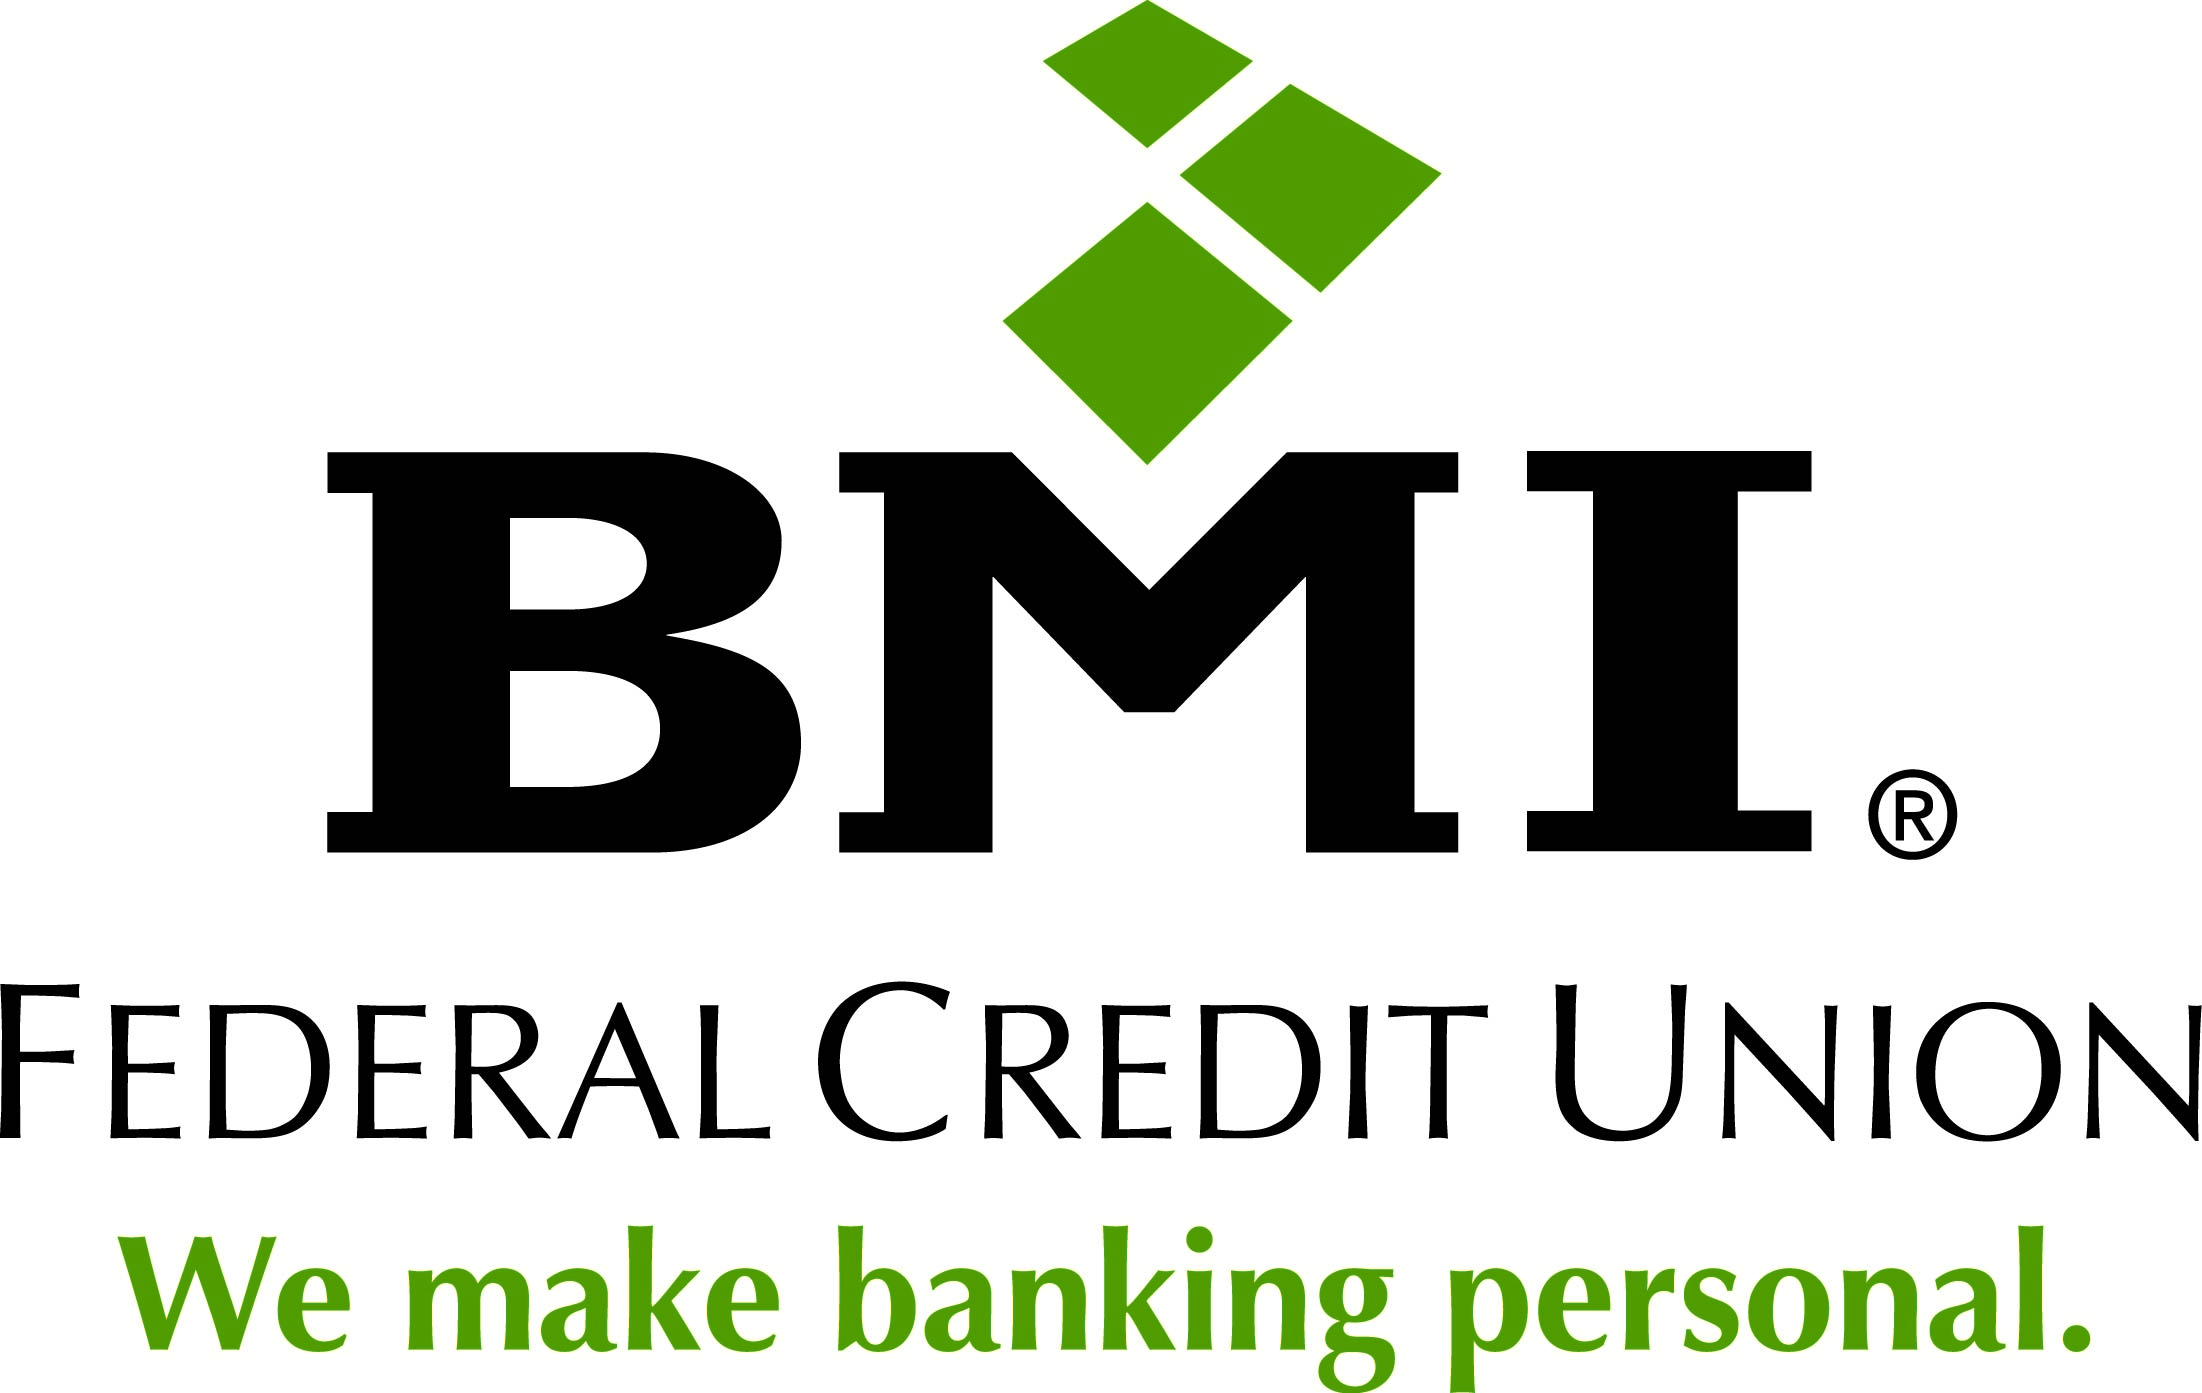 6. BMI Federal Credit Union (Stroll)